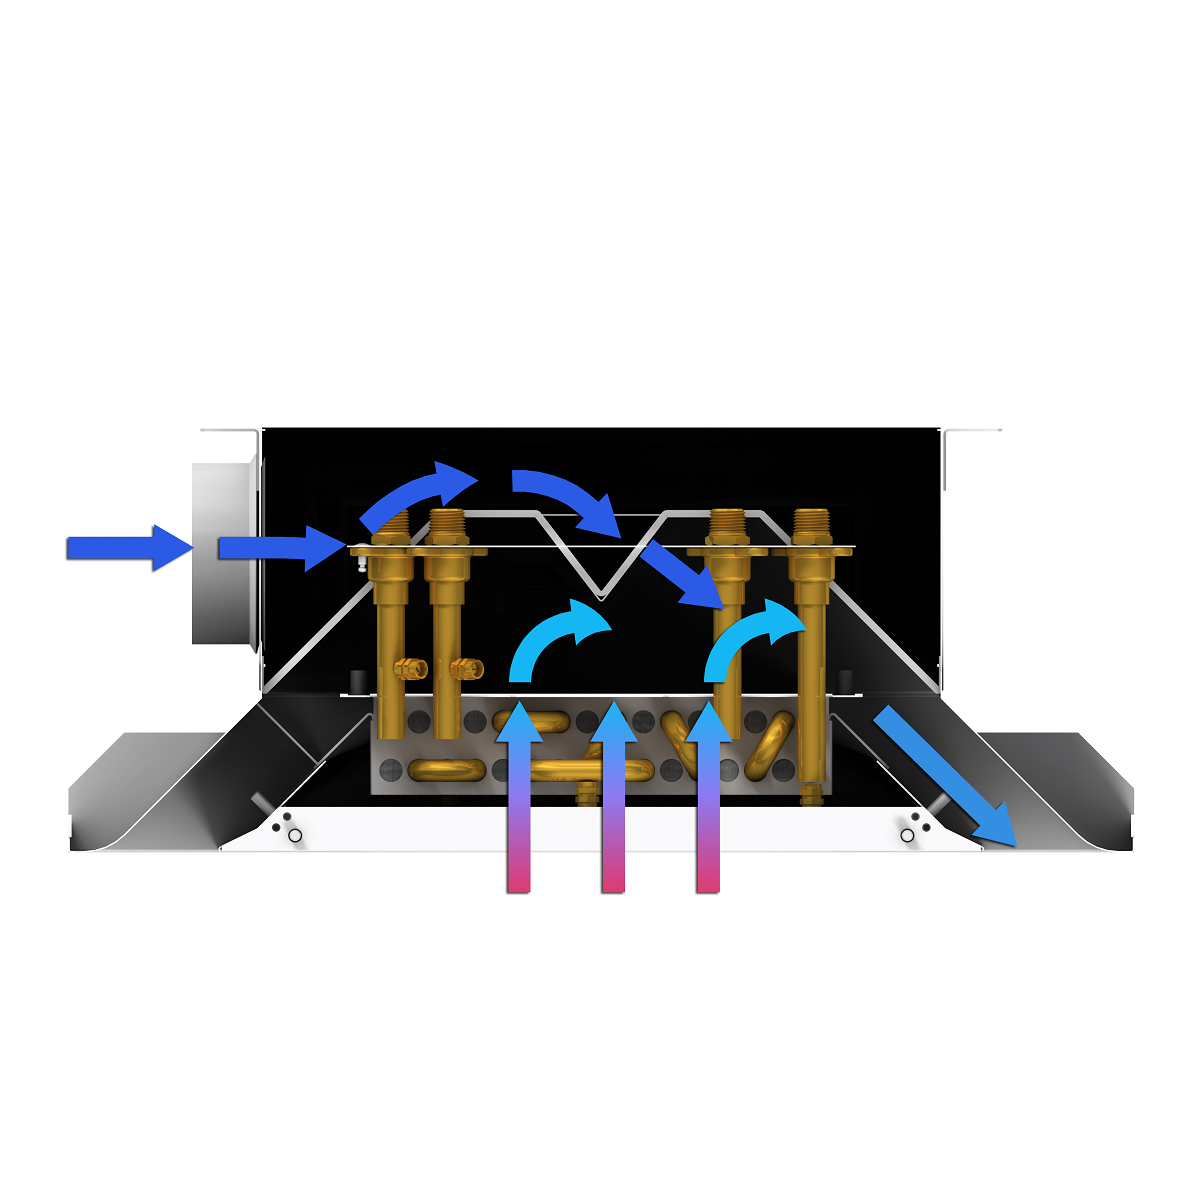 Active Chilled Beam airflow